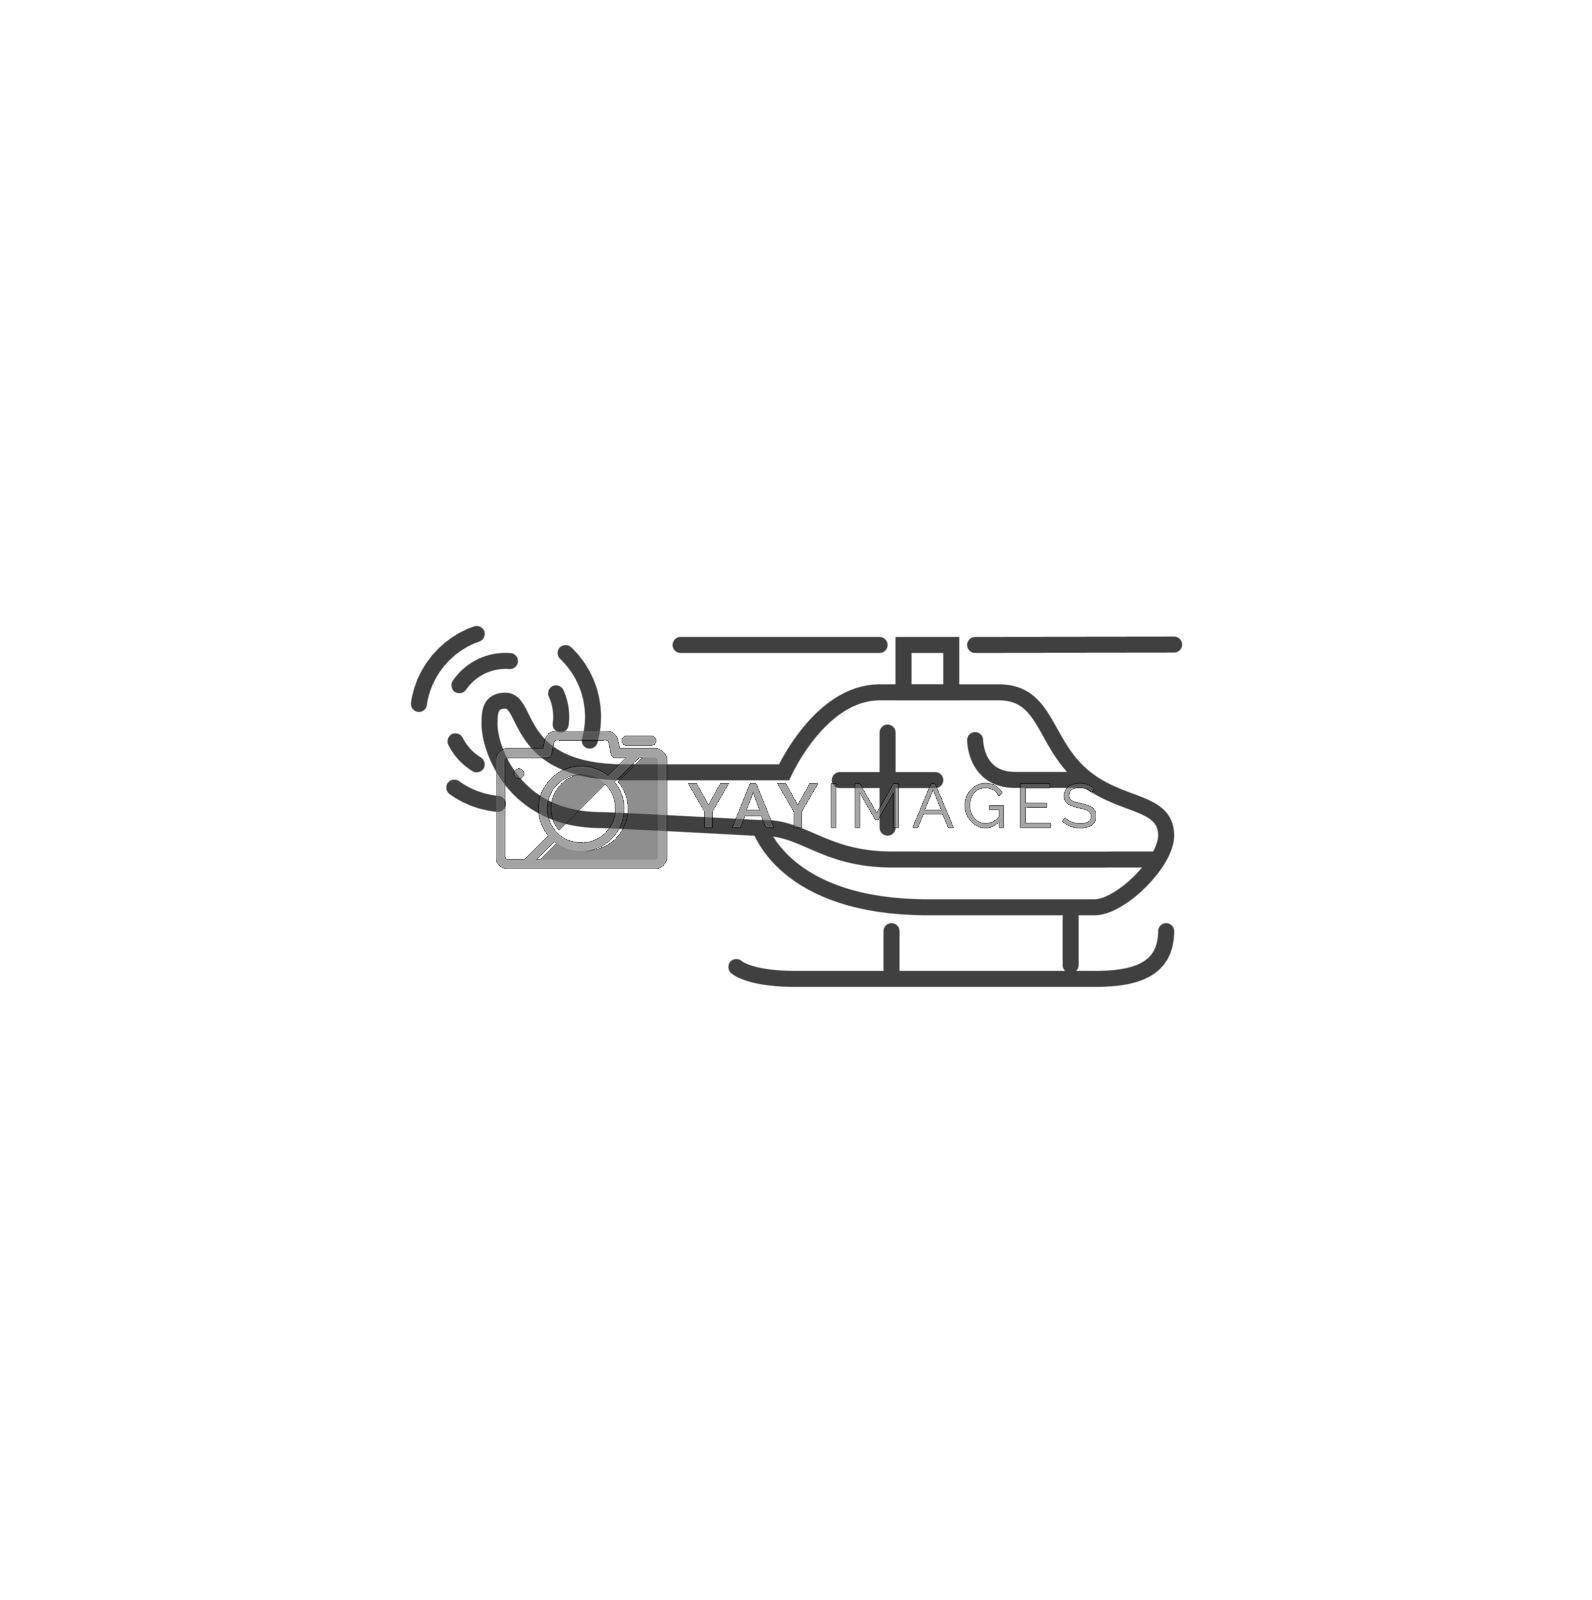 Emergency Helicopter Thin Line Vector Icon. Flat Icon Isolated on the Black Background. Editable Stroke EPS file. Vector illustration.